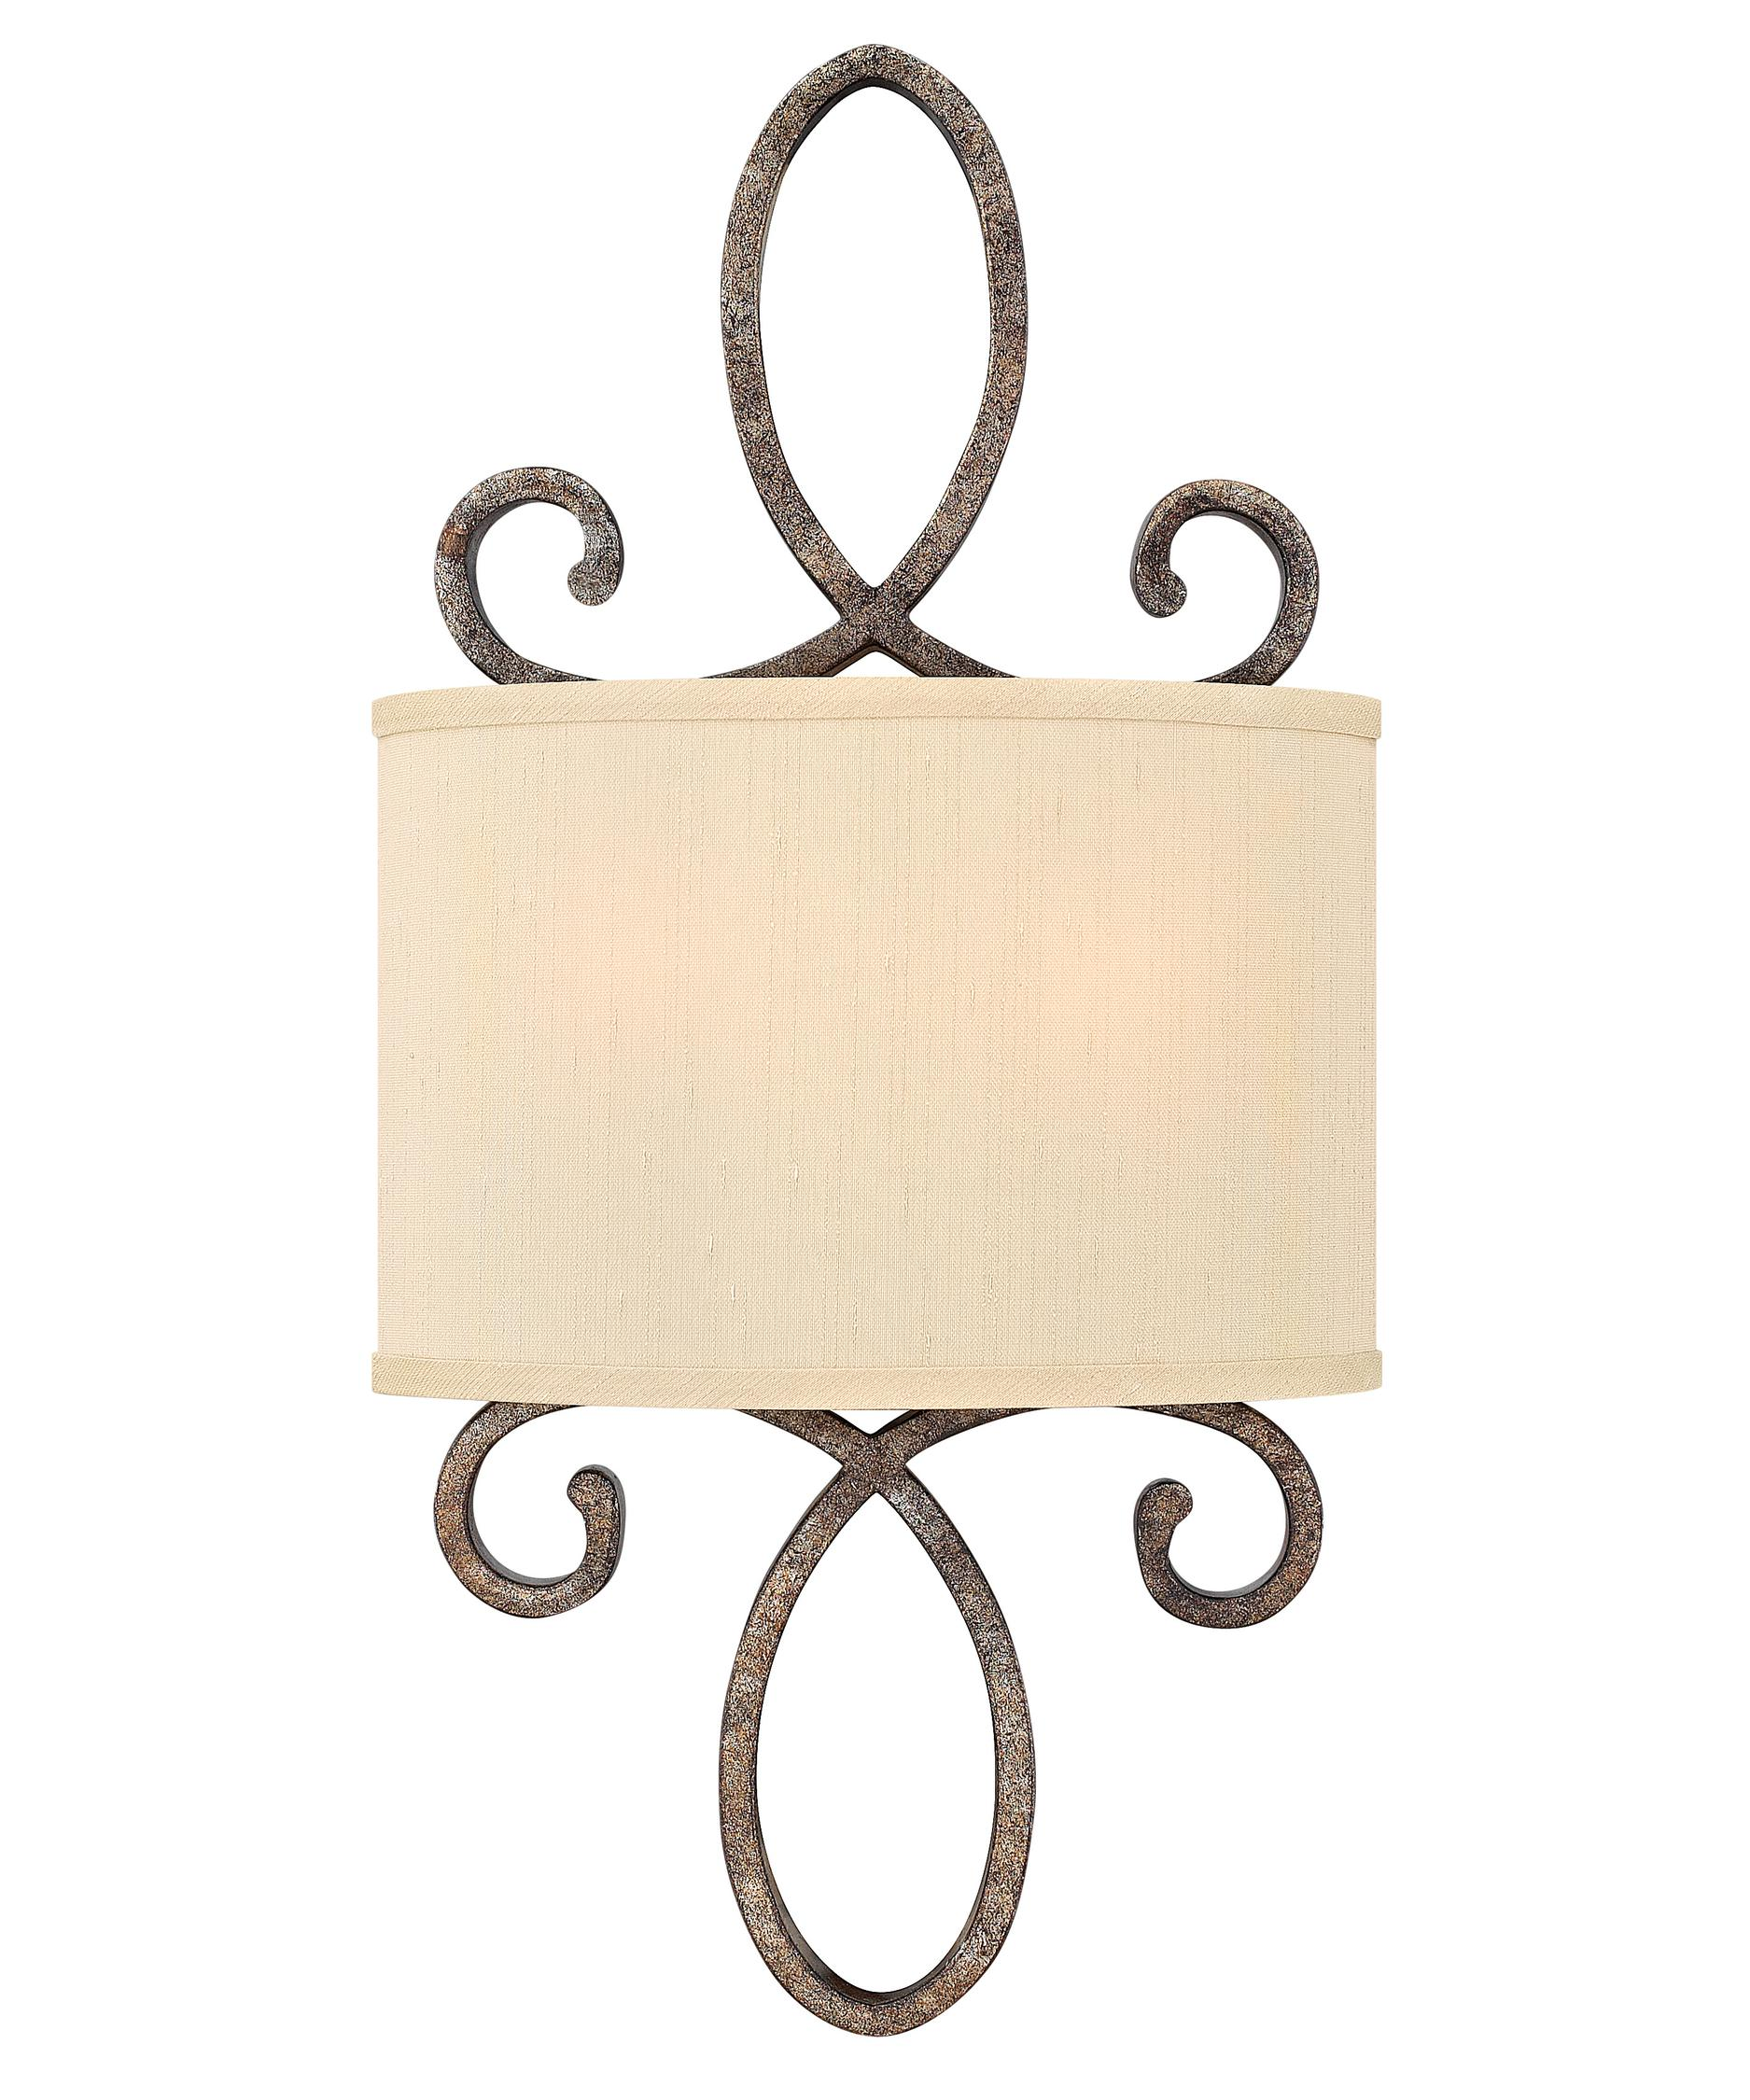 fredrick ramond fr42500 monterey 10 inch wide wall sconce shown in brushed merlot finish and golden siulk fabric shade